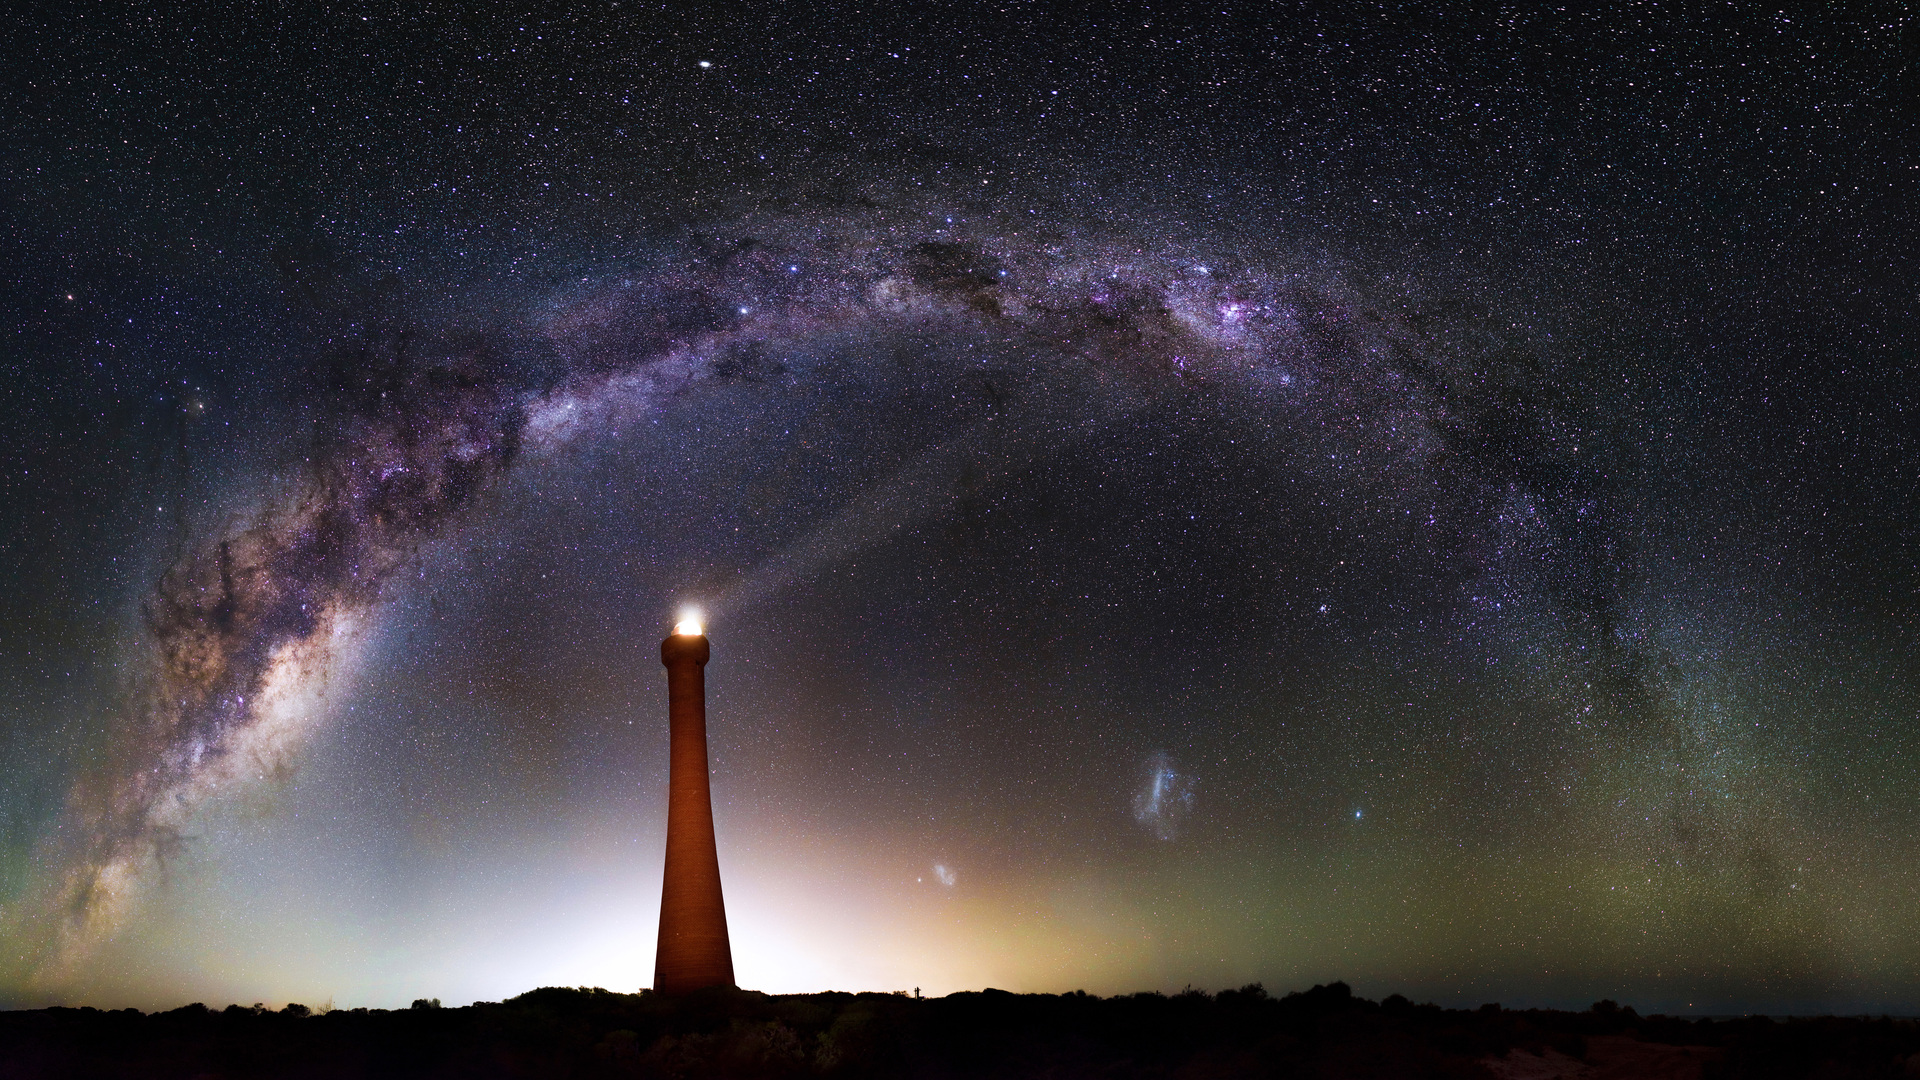 Most Inspiring Wallpaper Night Lighthouse - milky-way-over-lighthouse-5k-4c-1920x1080  Image-972924.jpg